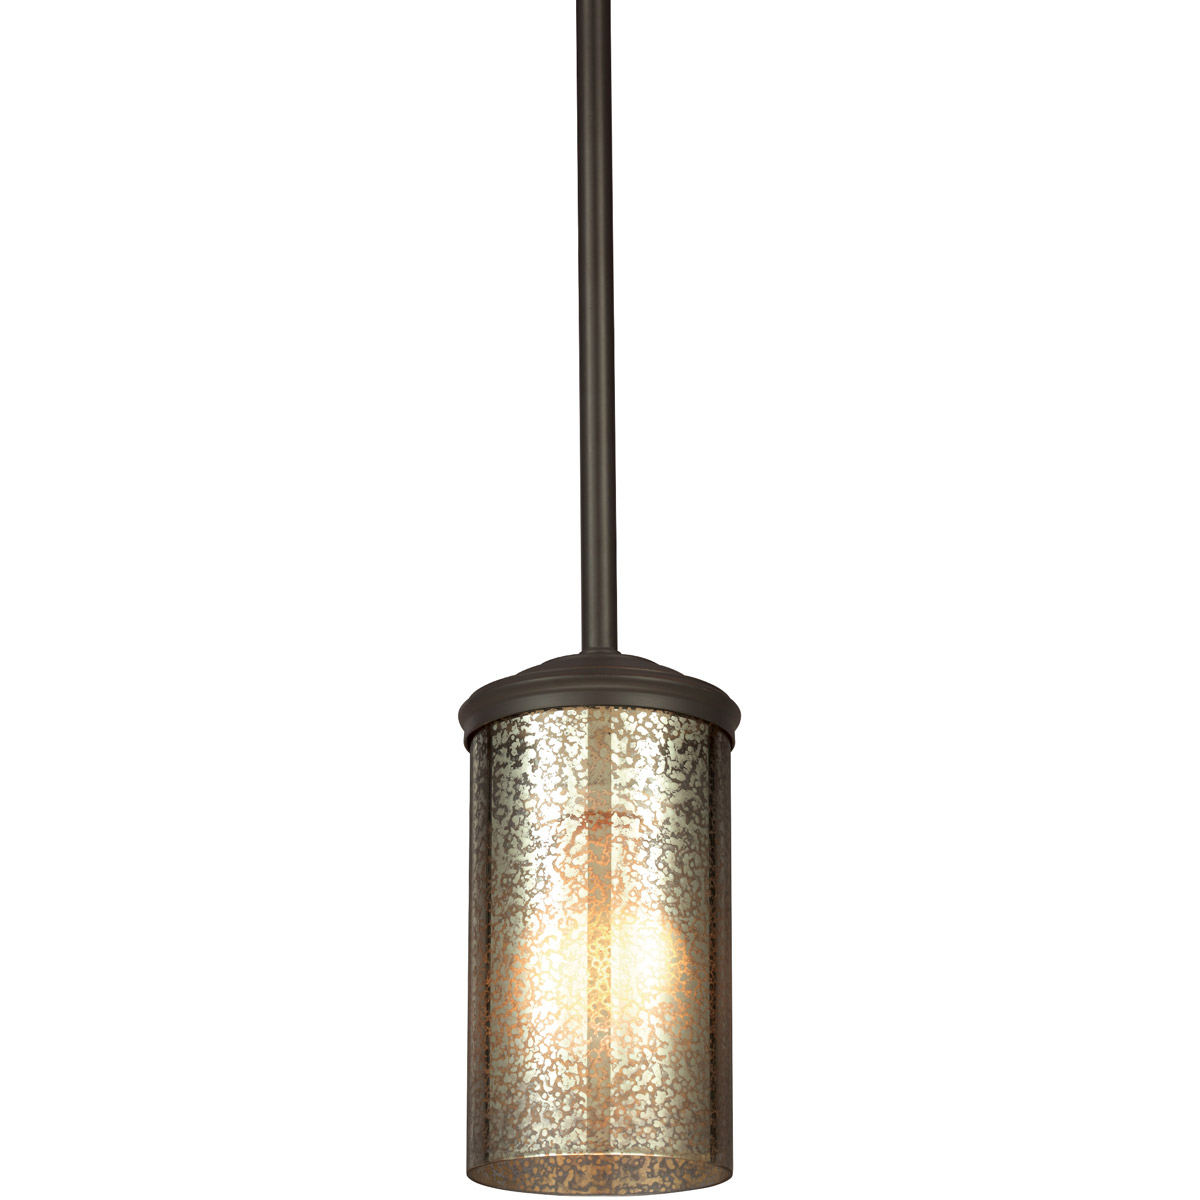 Sea Gull Sfera 1 Light Mini Pendant in Autumn Bronze 6110401-715